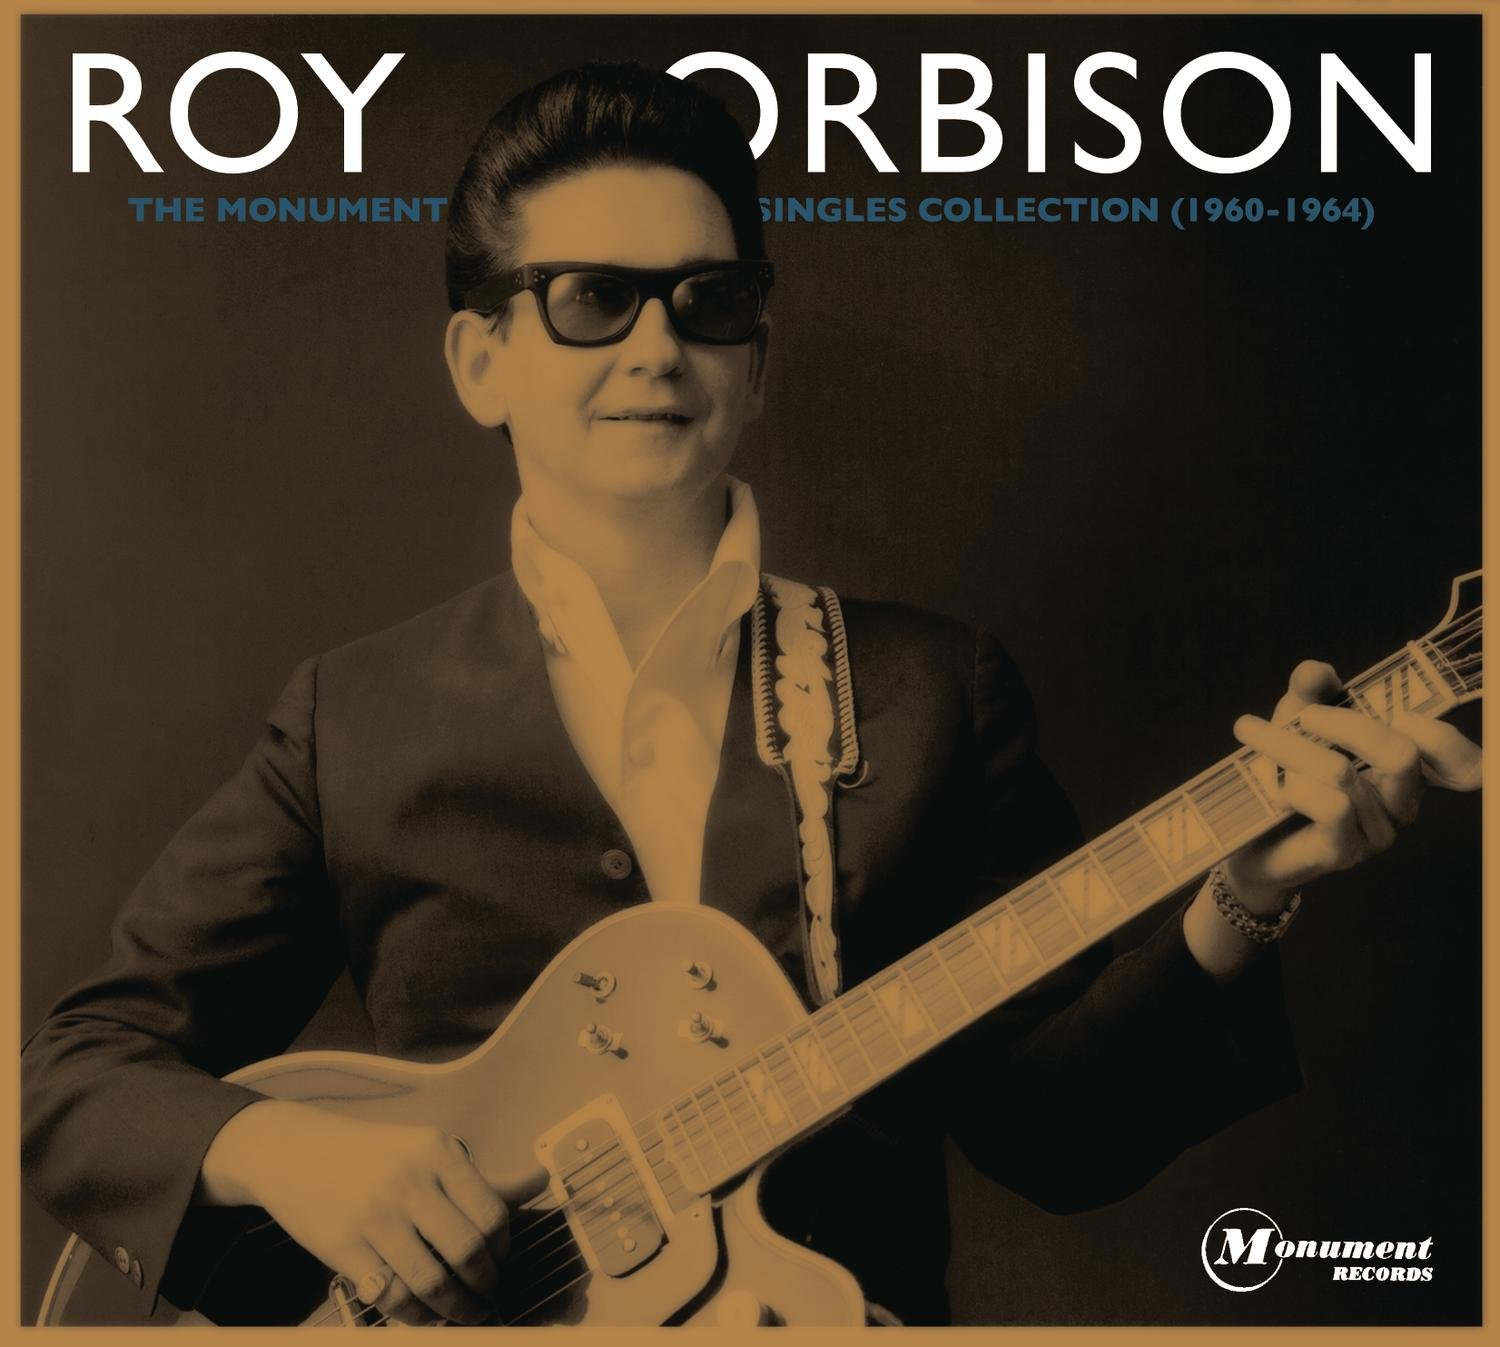 Only The Lonely Roy Orbison vinyl record memories.